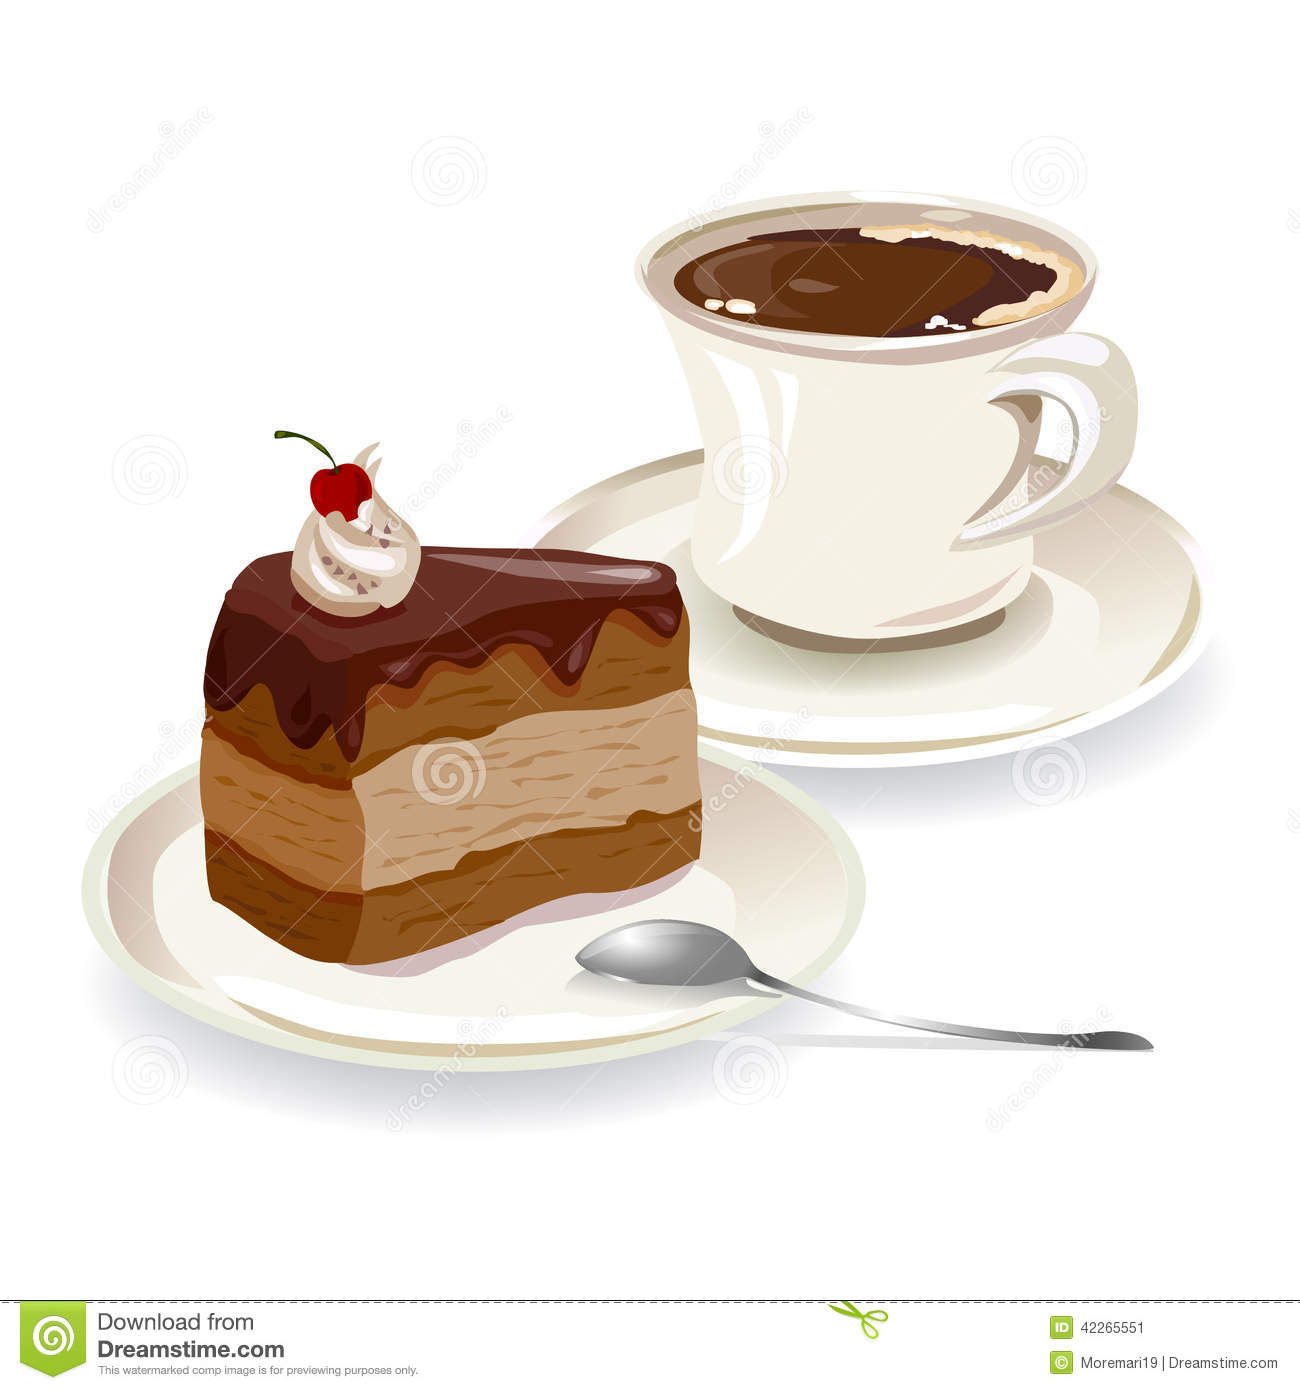 cup of coffee and a piece of cake stock illustration free vintage cooking clipart free cooking clipart for kids